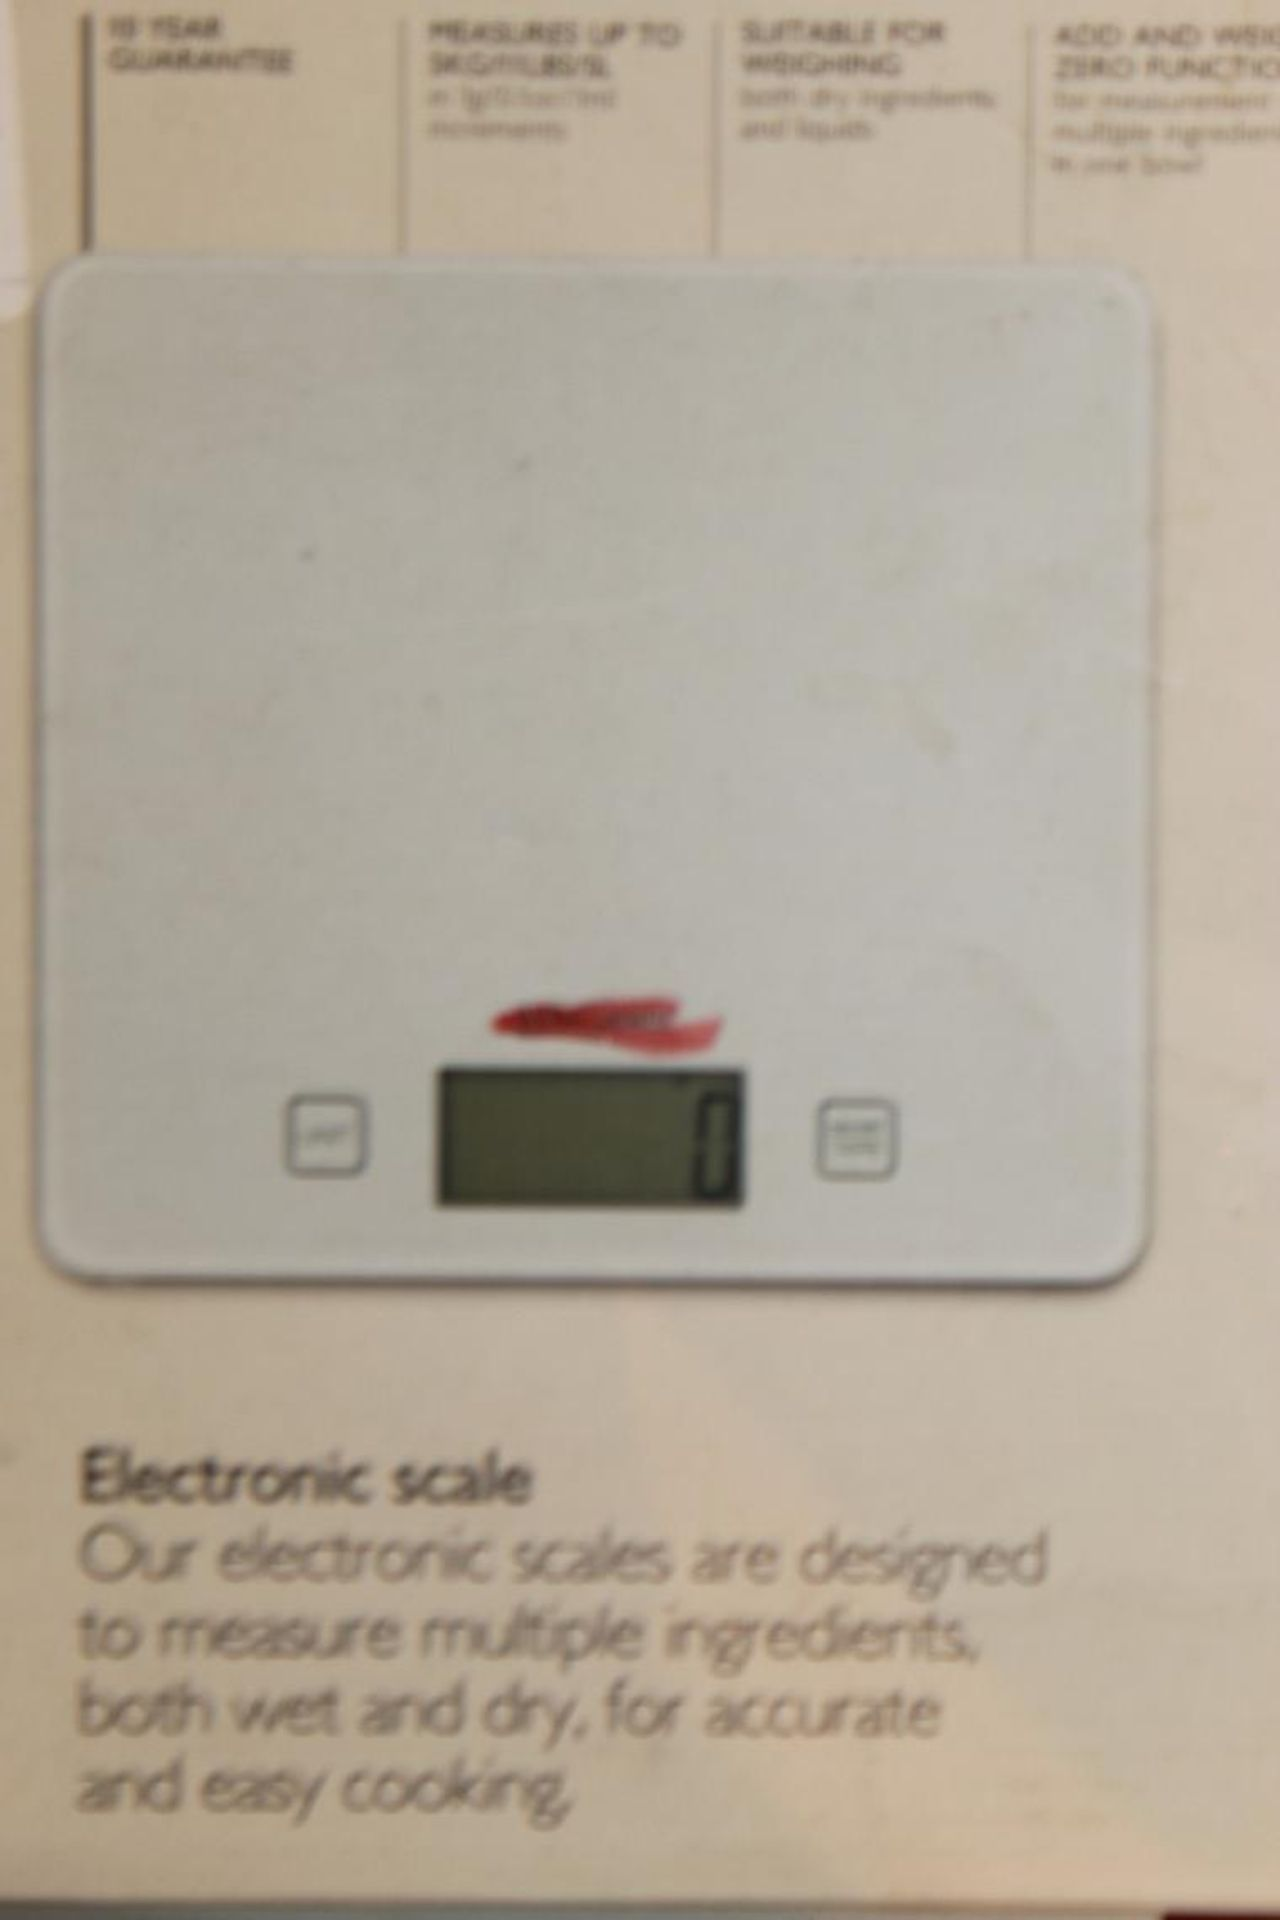 Lot 314 - Boxed Assorted Pairs Of John Lewis And Partners Digital Weighing Scales RRP £20-£30 Each (743938) (